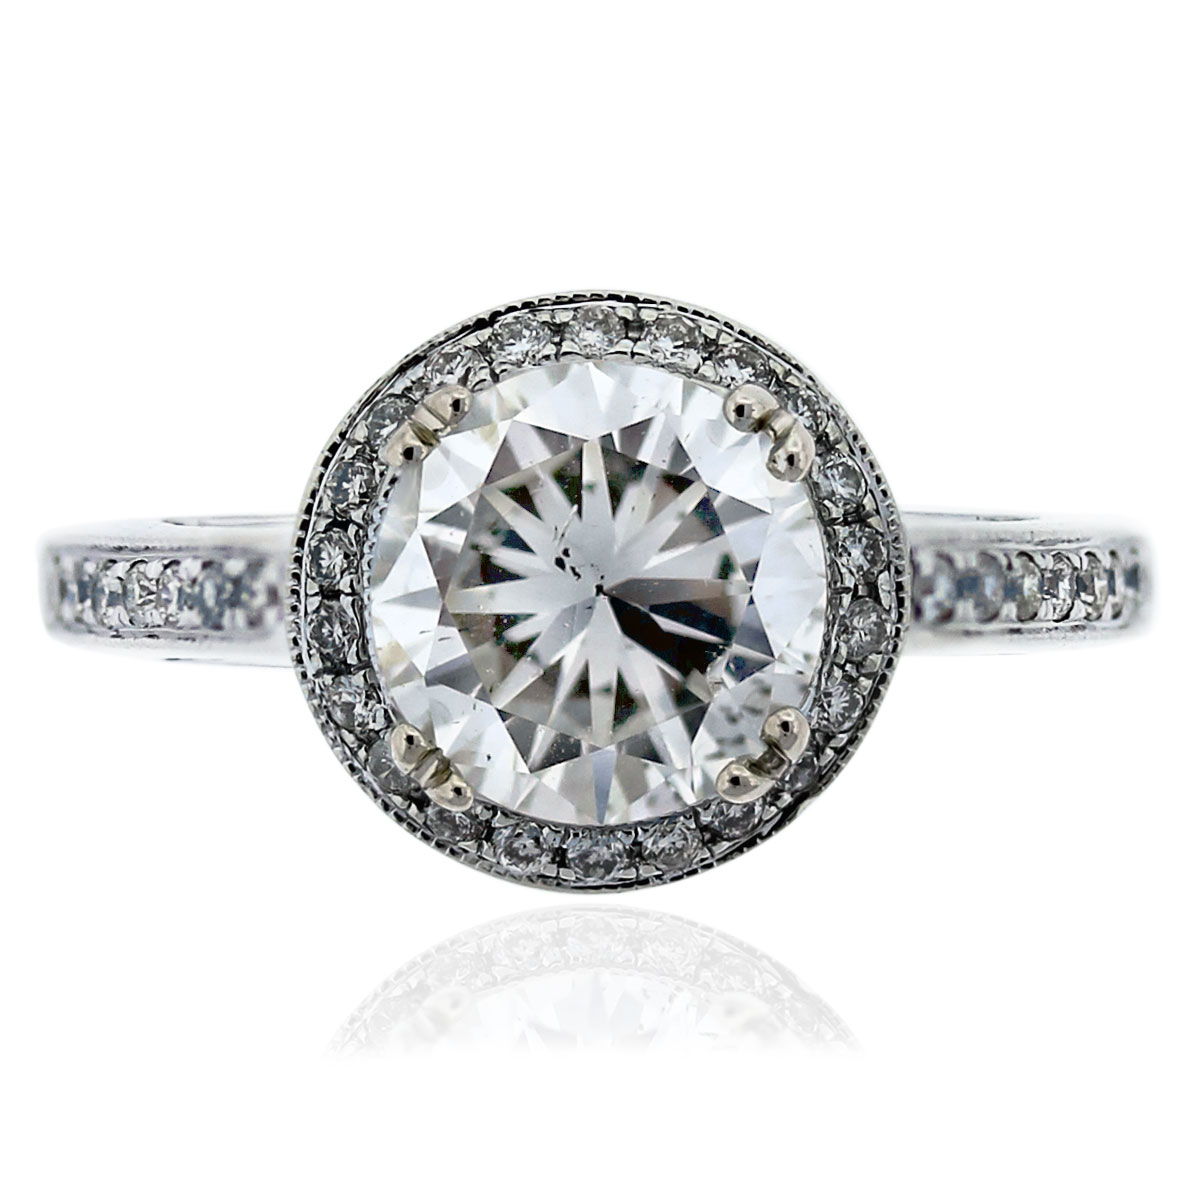 14k White Gold GIA Certified 1.83ct Diamond Halo Engagement Ring